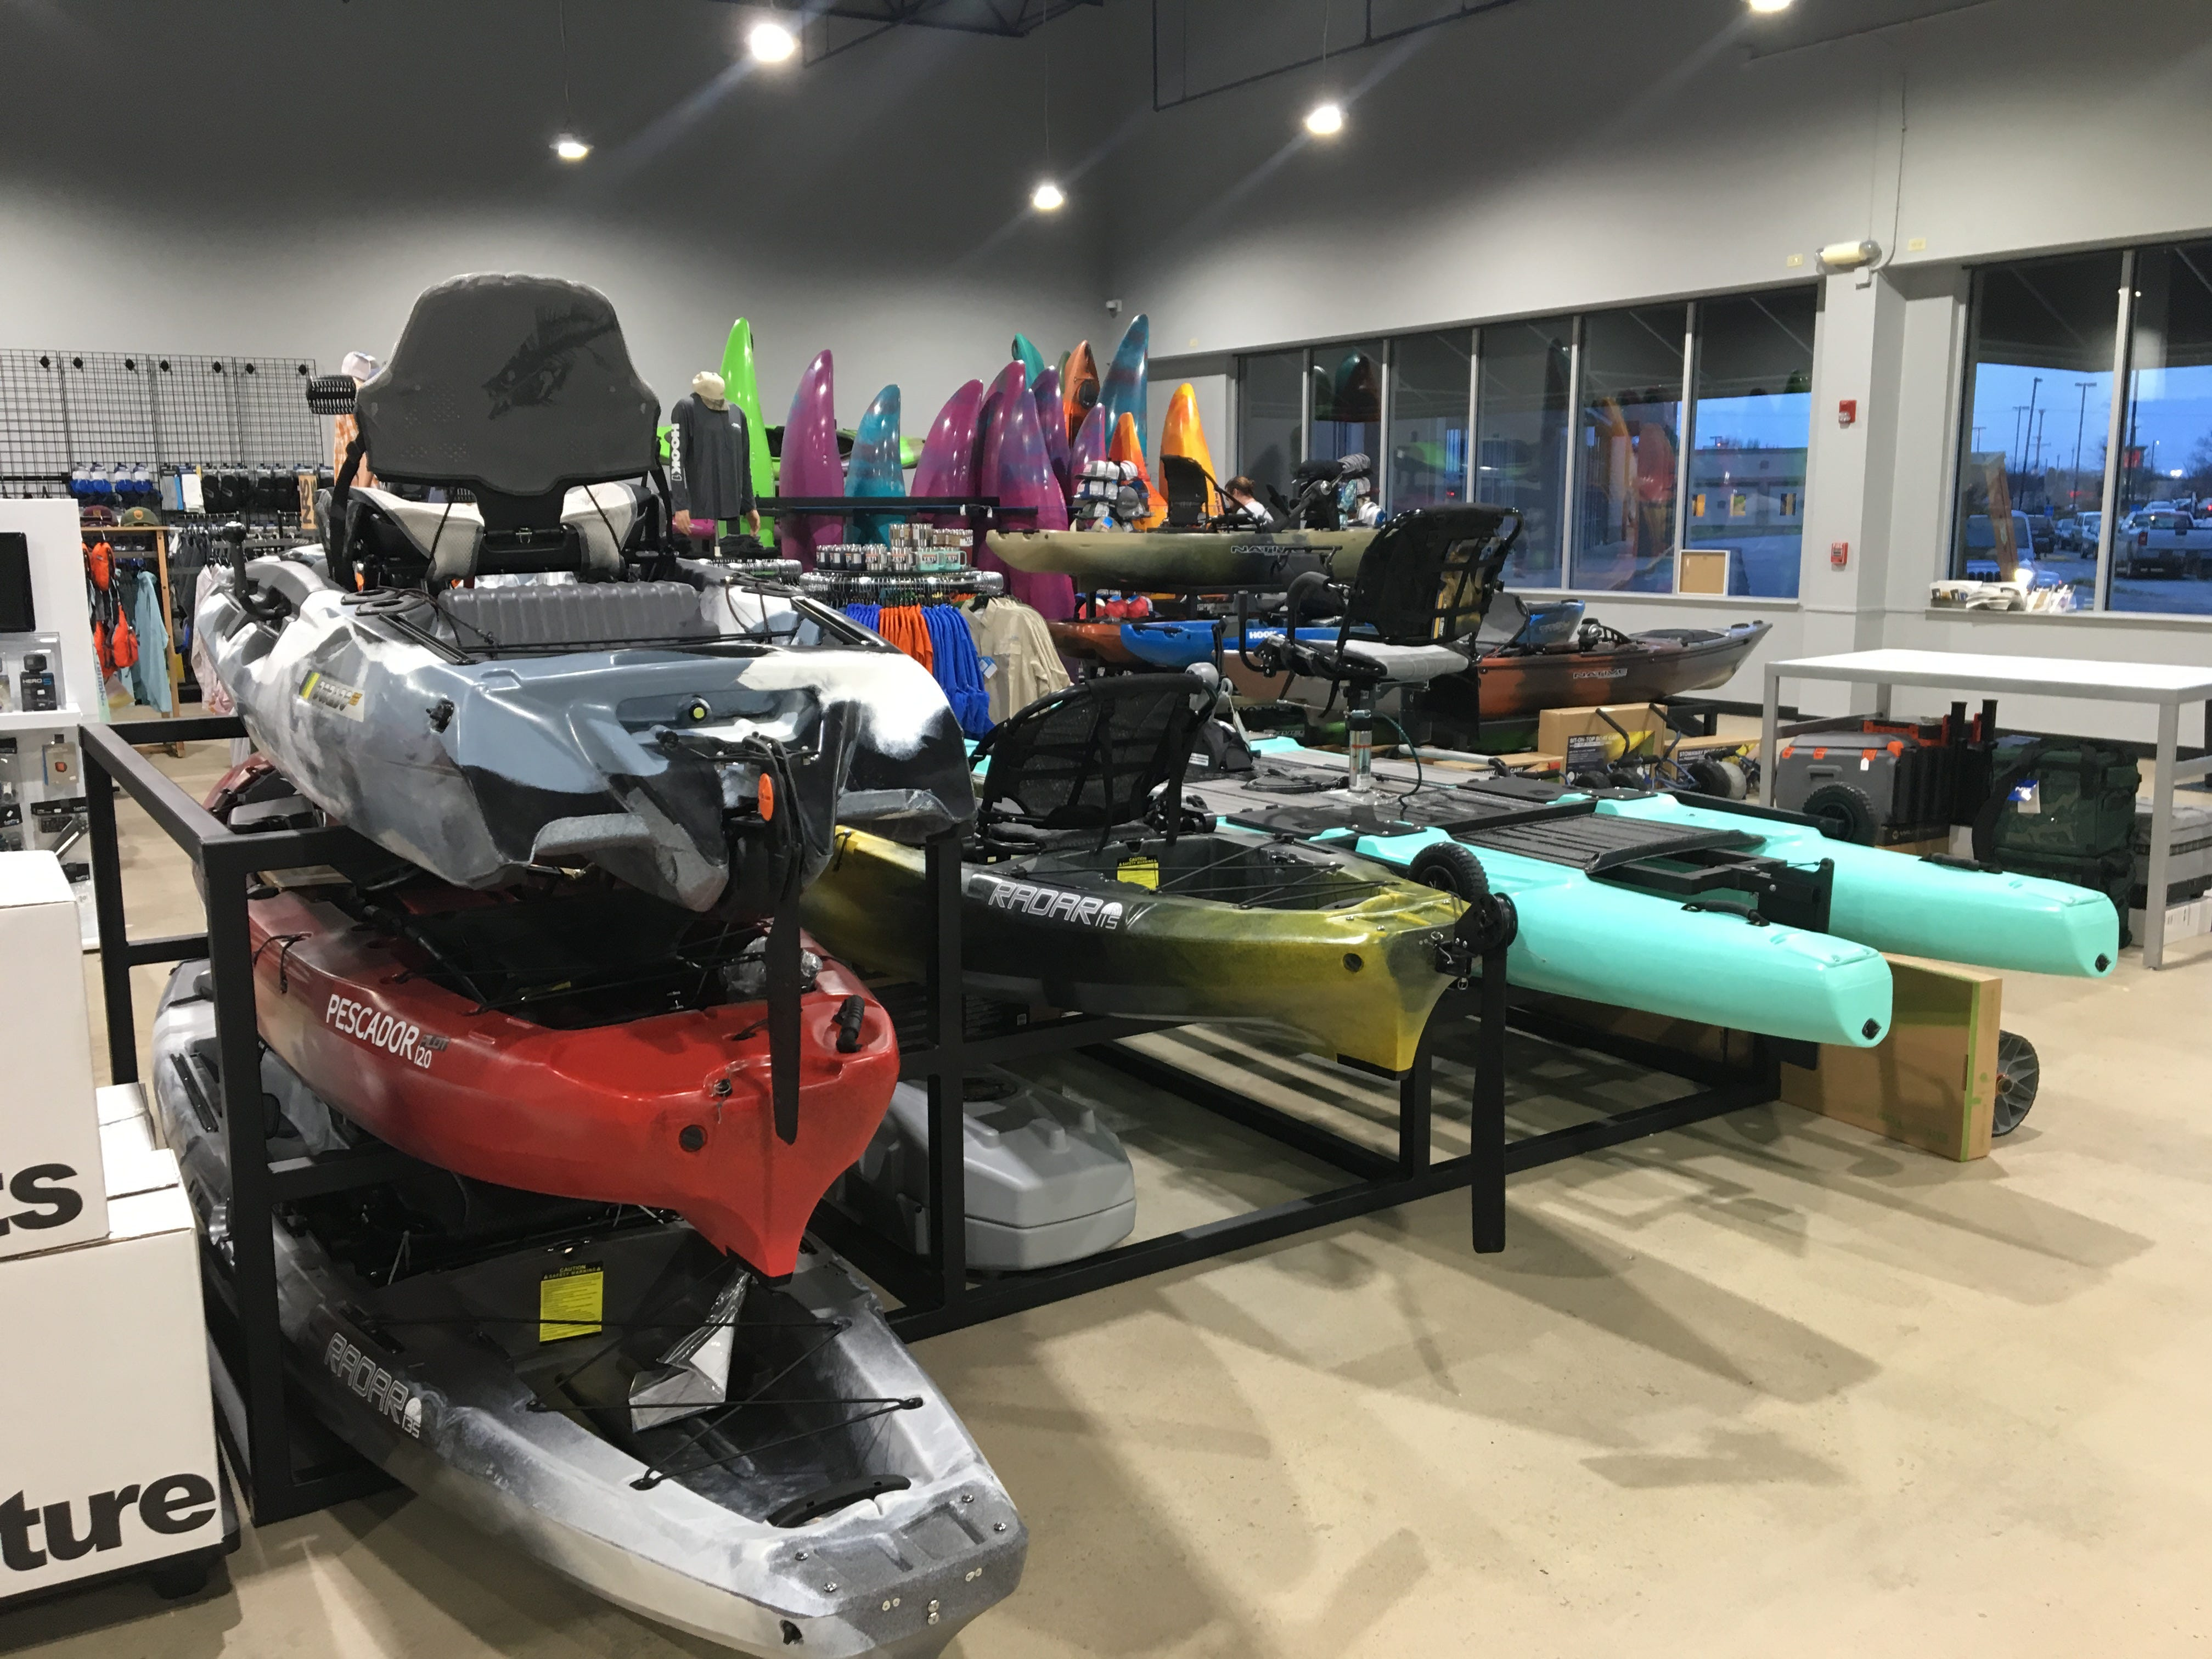 Need a little more push on the water? Hook 1 outfitters sells pedal-driven kayaks.